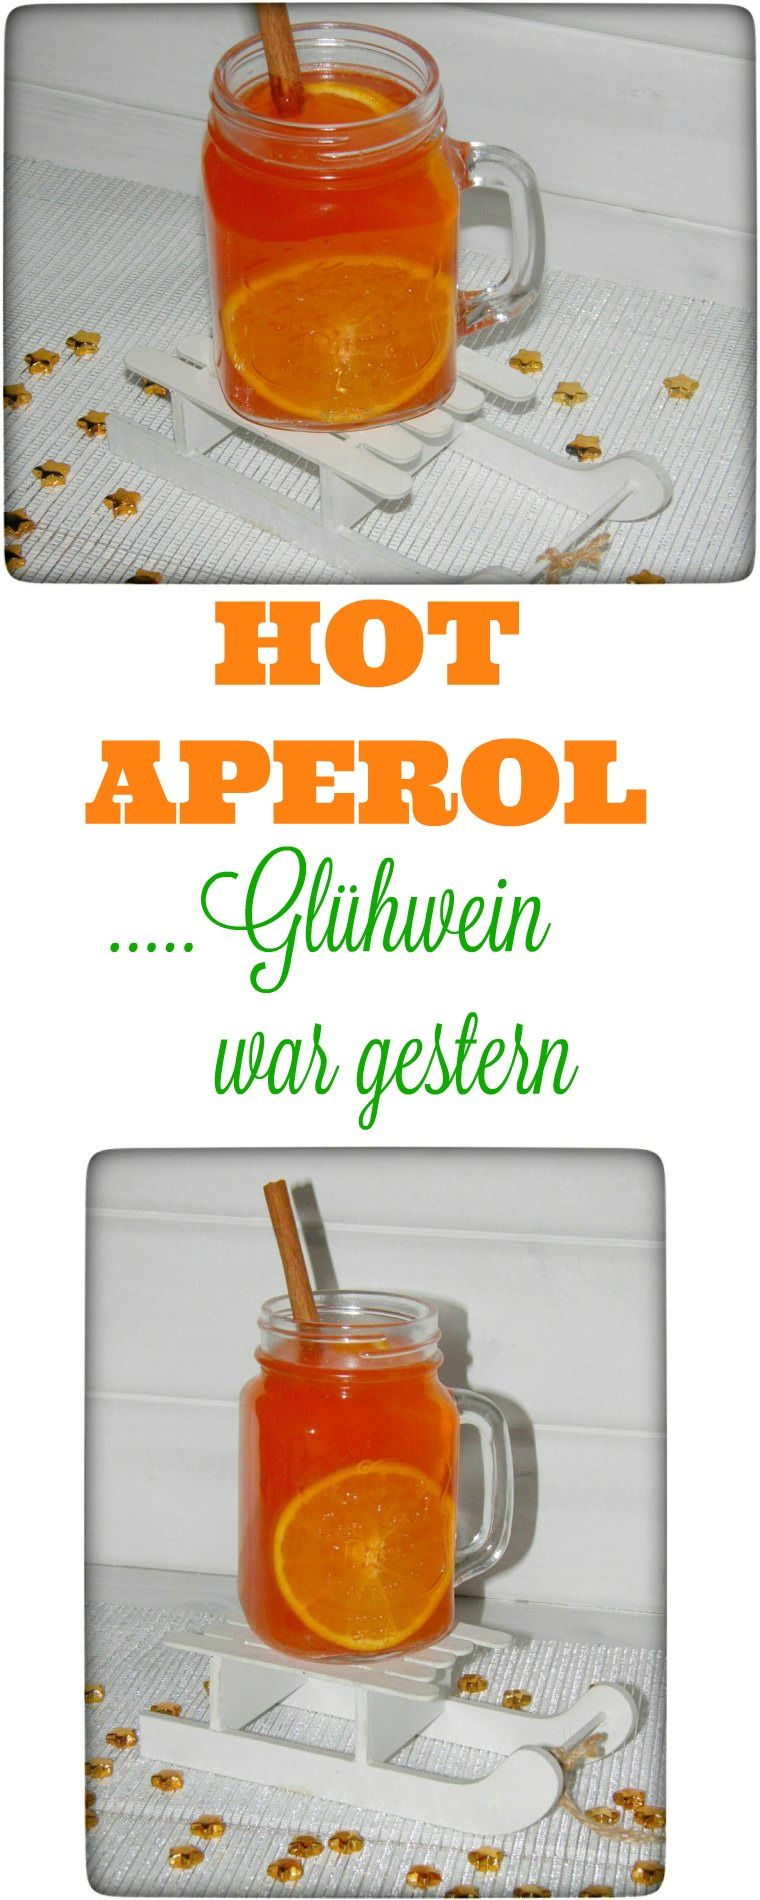 Hot Aperol - Glühwein war gestern... - Food & Travel-Blog #cocktaildrinks